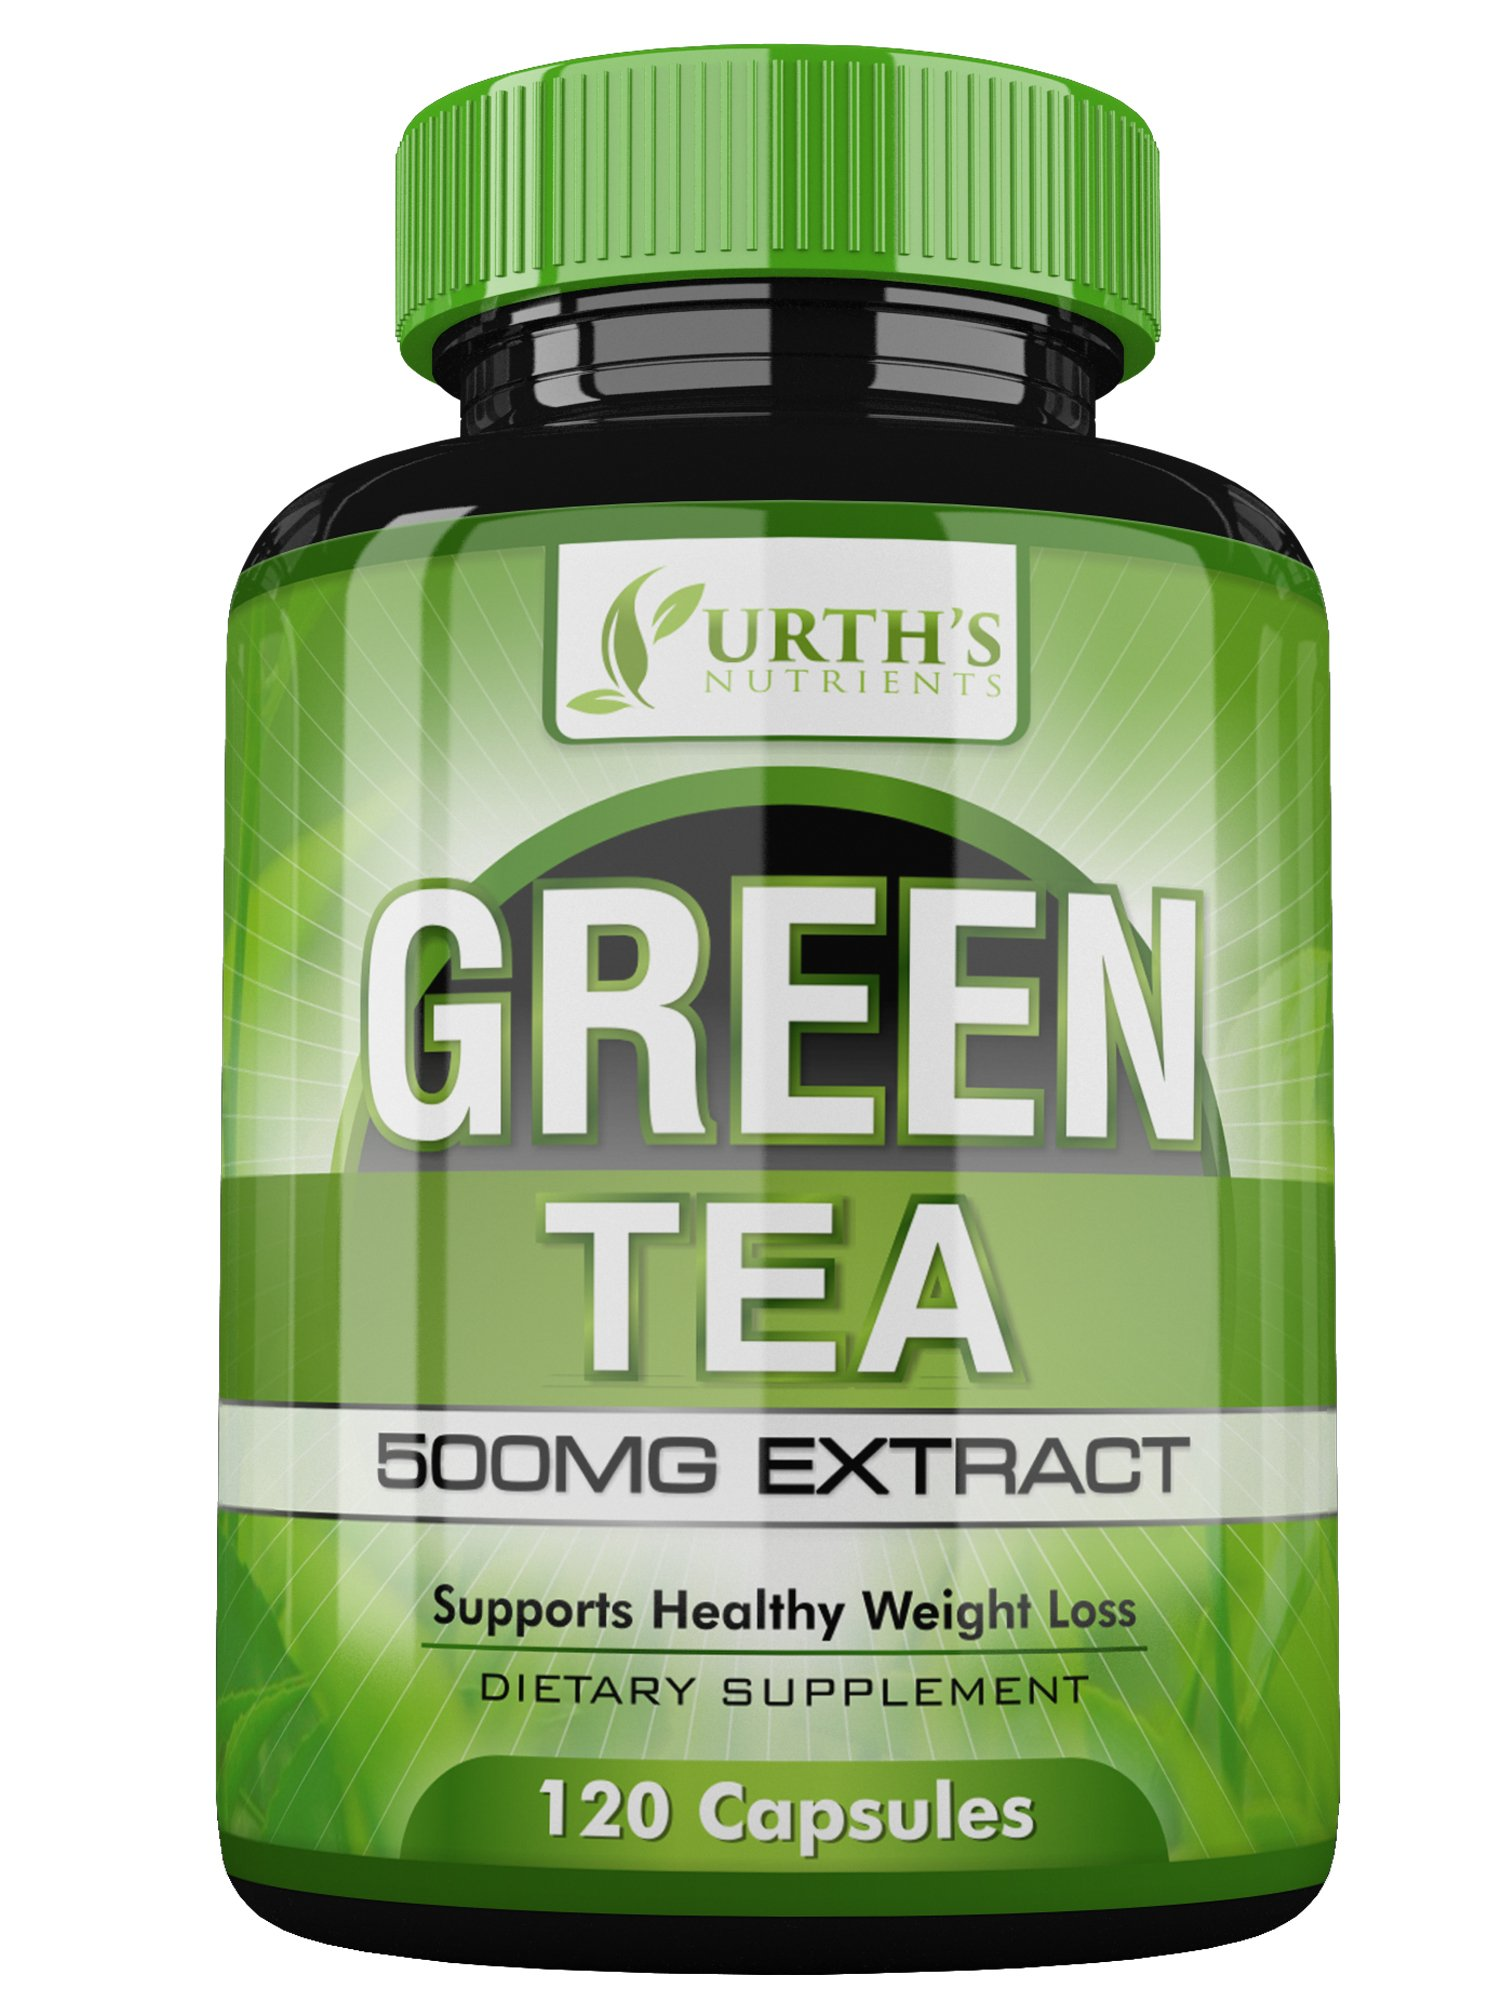 Green Tea Extract Supplement with EGCG - 120 Day Supply - 100% MONEY BACK GUARANTEE - NON GMO - Healthy Weight Loss Support - Made in USA